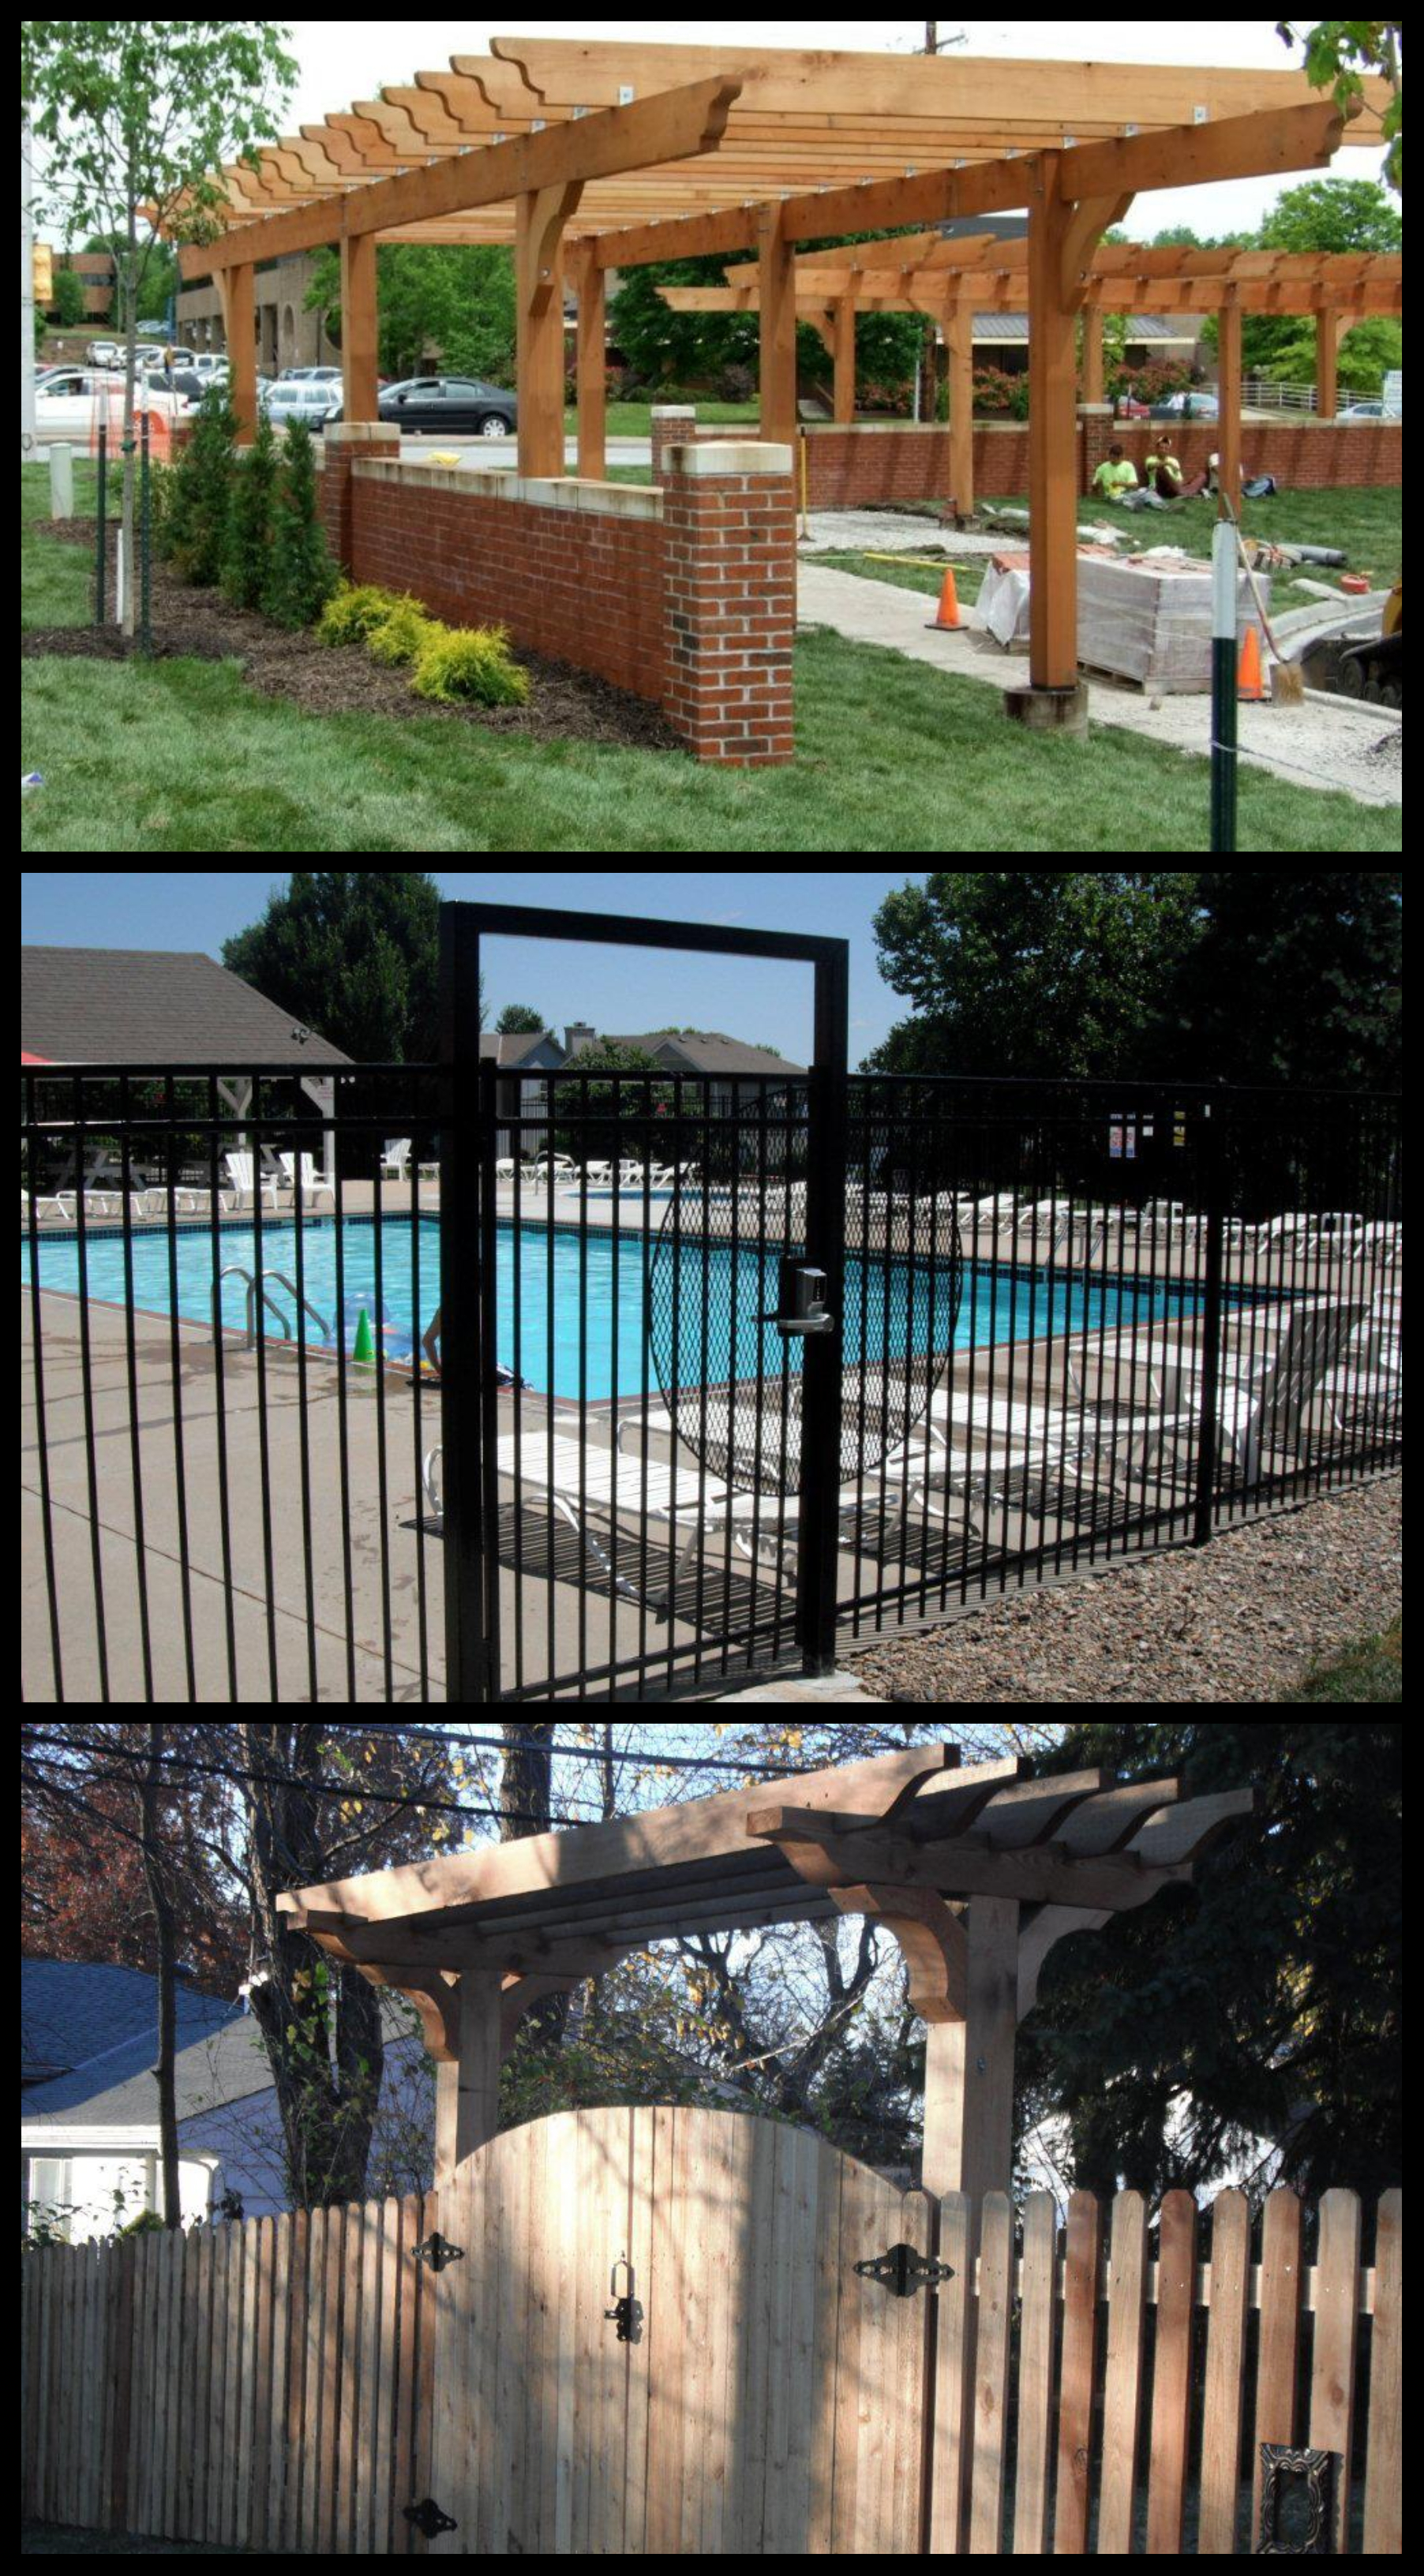 Pergolas and Custom Gates - Pergolas can add a creative and expensive flair to any outside space. Pergolas provide shade, protection from the elements and support creeping vegetation and center a gathering spaceCustom Gates add security and beauty to any fence line. Gates can be outfitted with a variety of security measure to ensure safety and controlled accessibility.